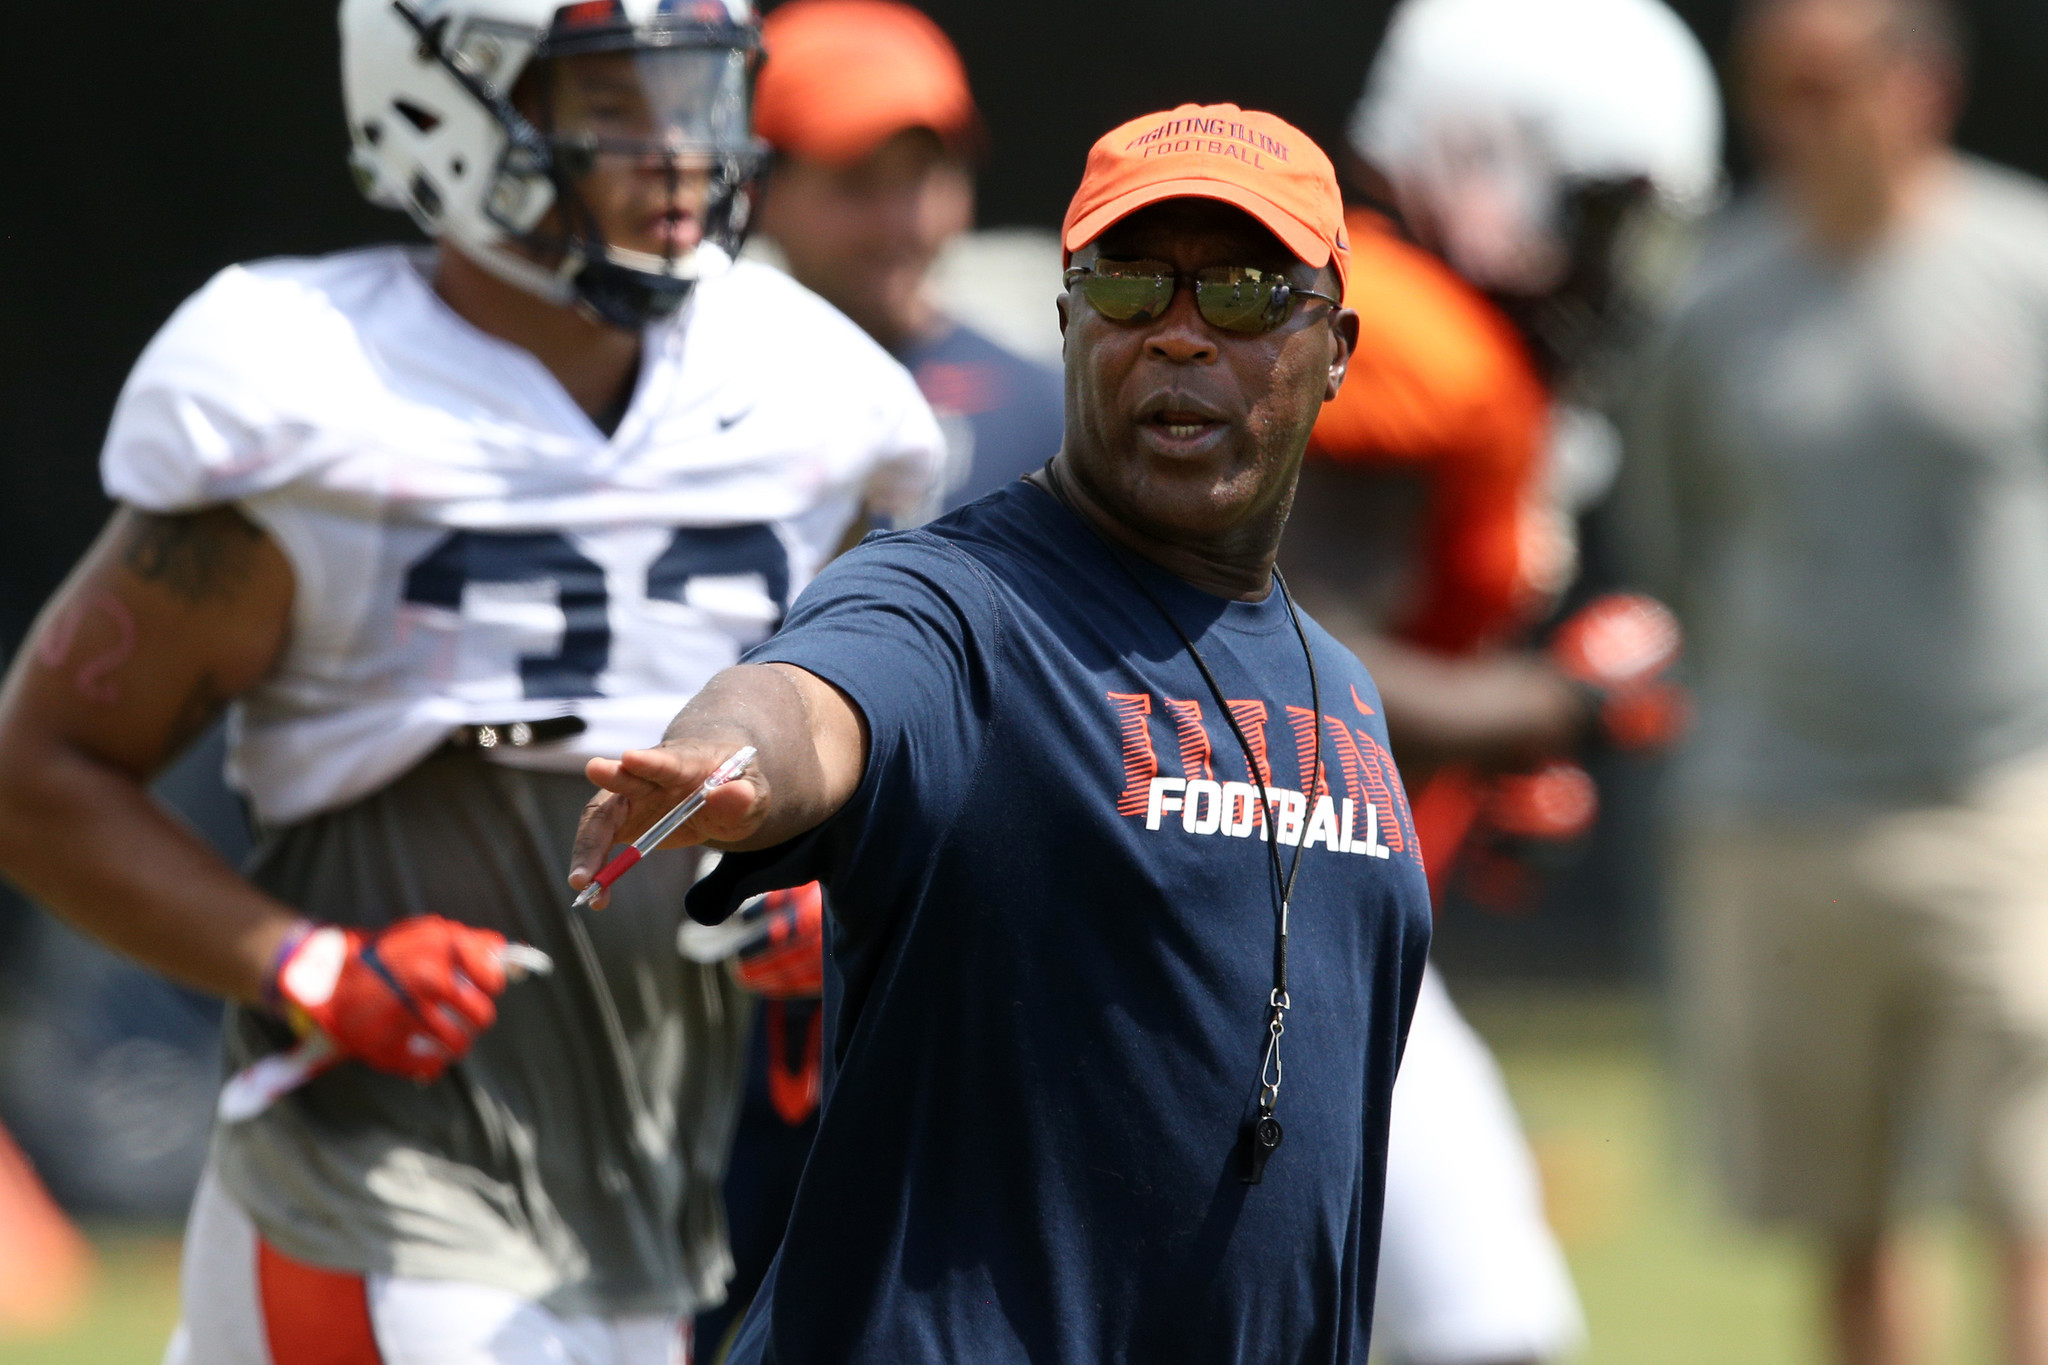 Ct-illinois-football-preview-capsule-spt-0824-20160823